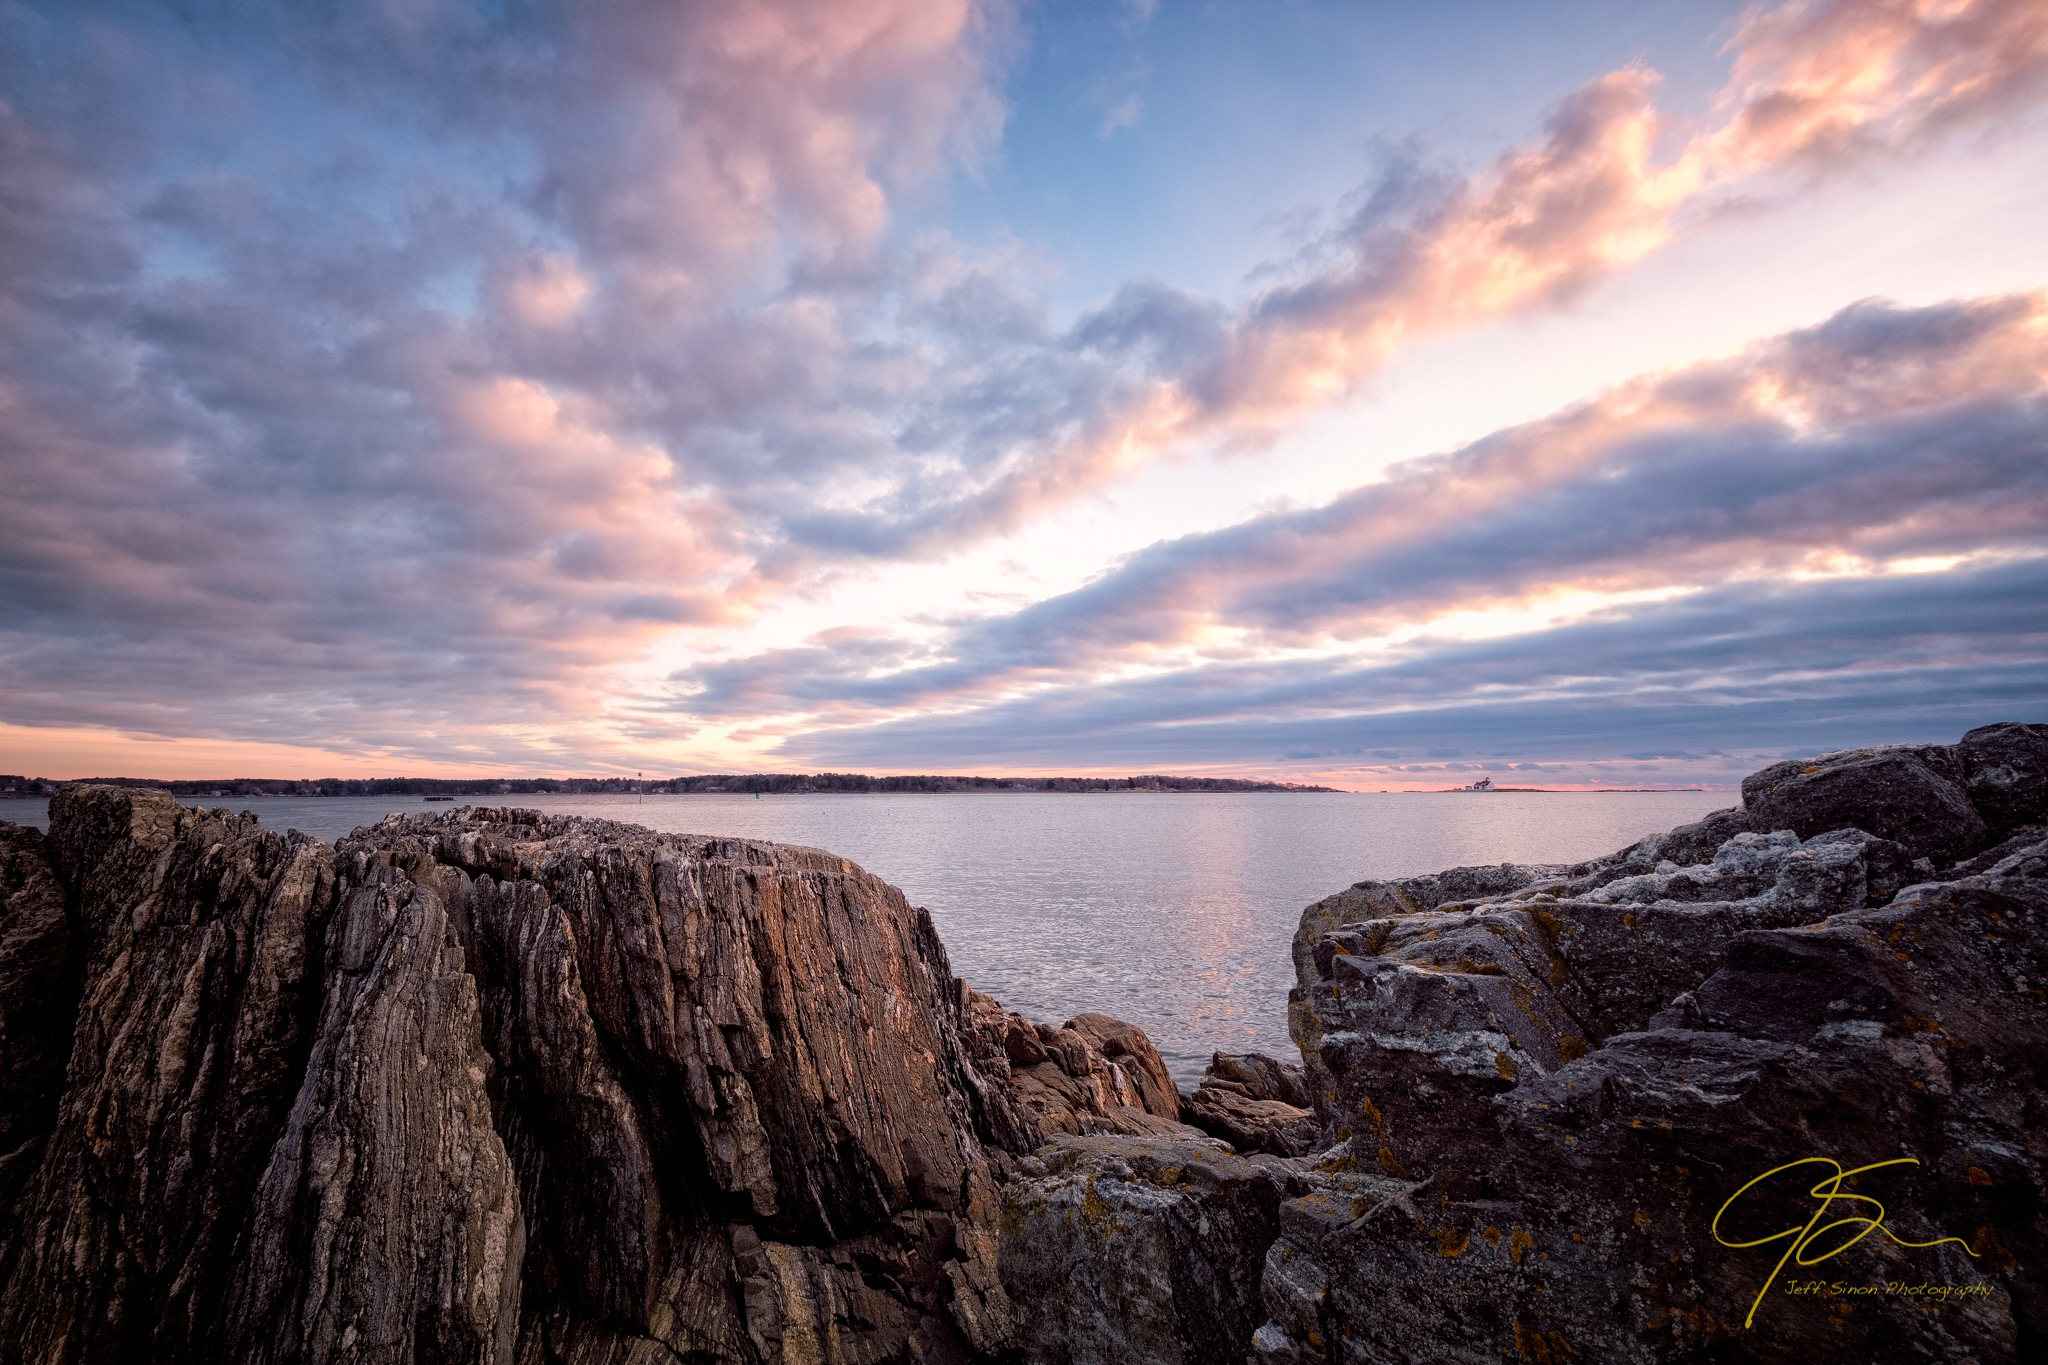 early light and dramatic clouds over the rocky shore of the New Hampshire seacoast